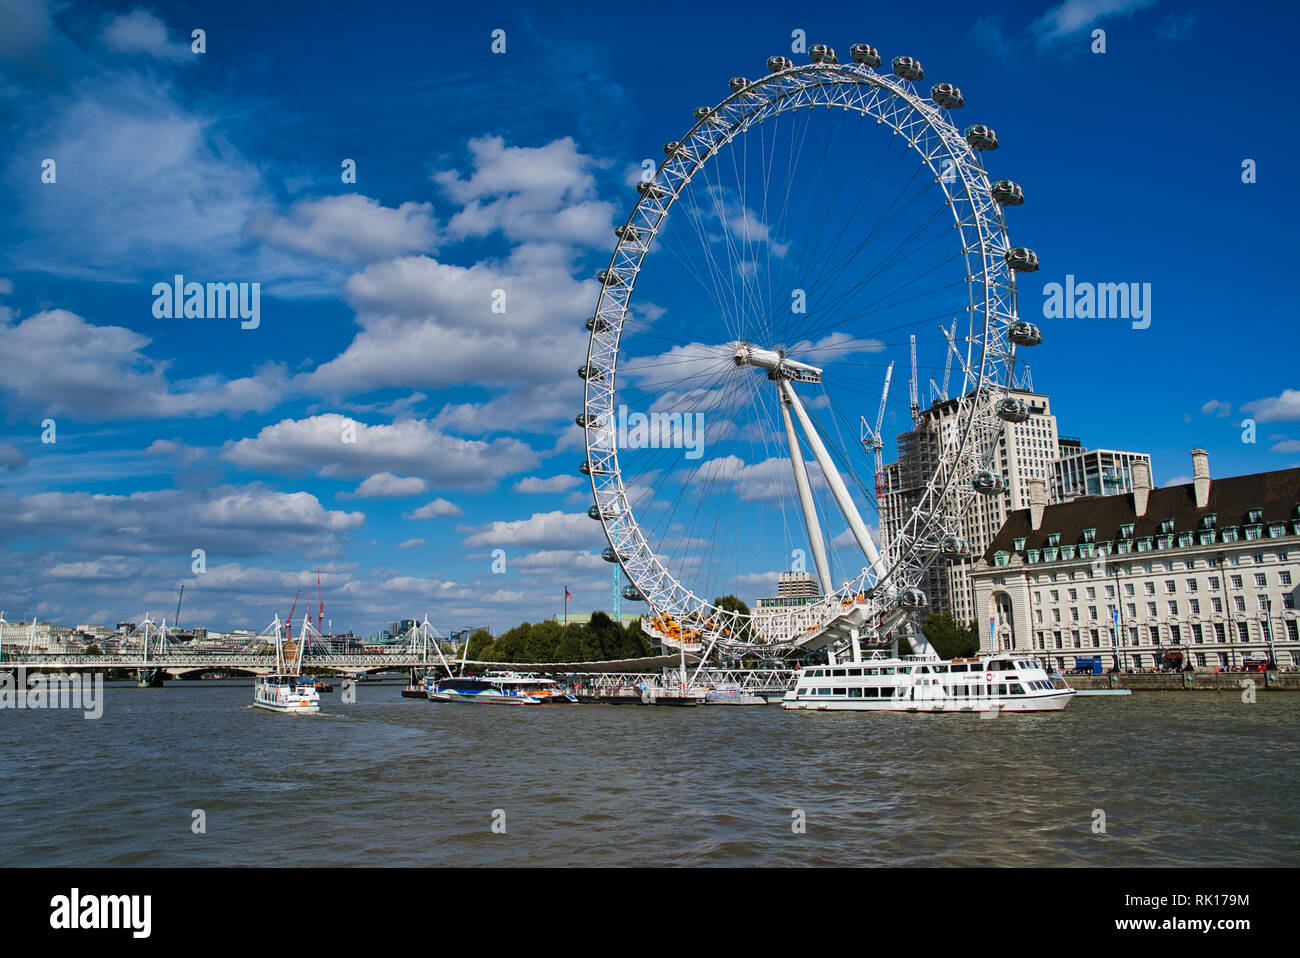 LONDON, UK - SEPTEMBER 9, 2018: Ferris wheel - London Eye, located in the Lambeth district on the south bank of the Thames. The largest in Europe and  Stock Photo